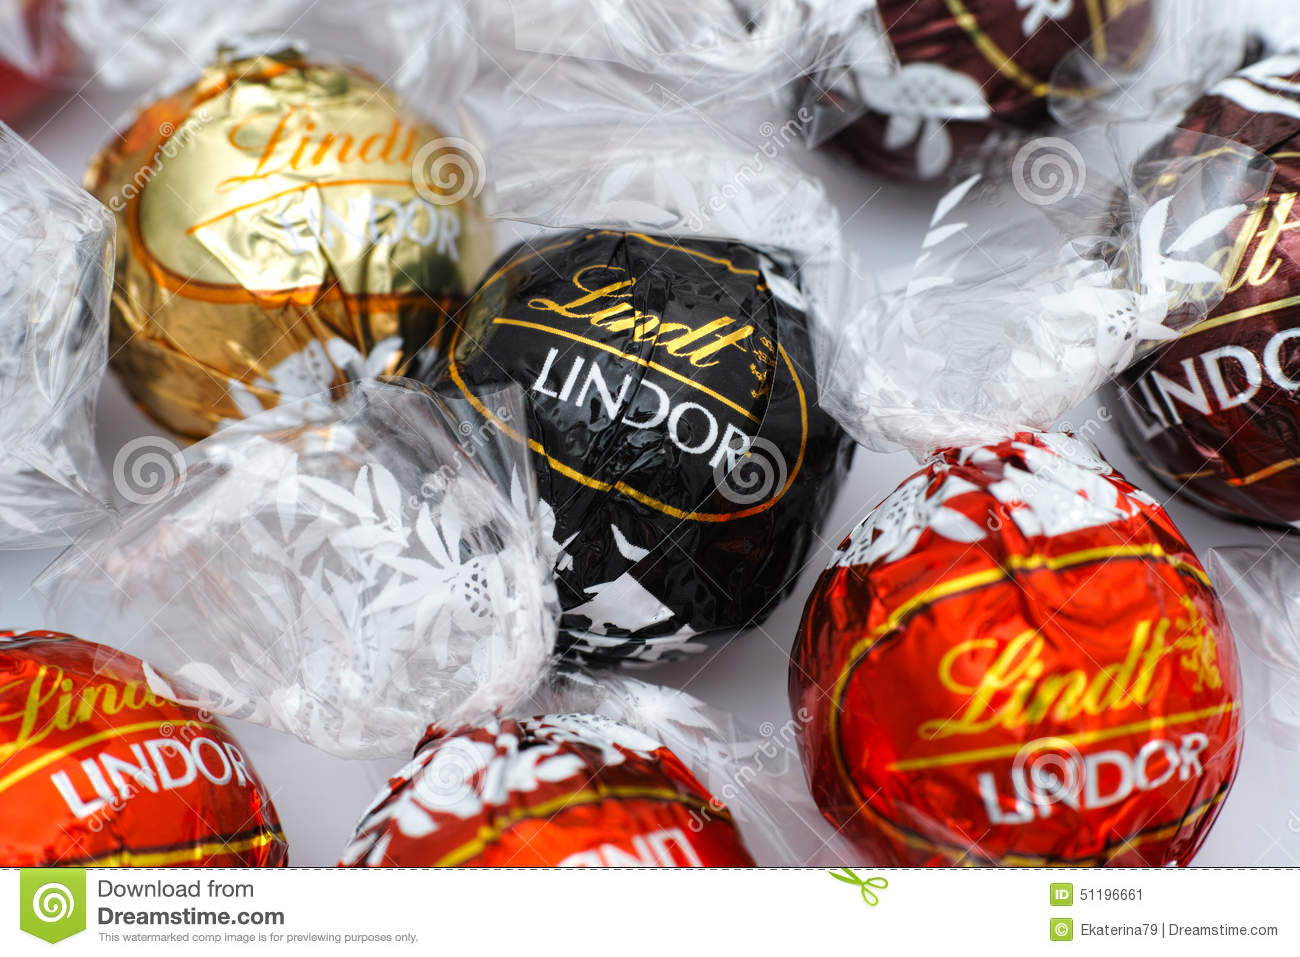 Lindt Lindor Chocolate Candies Editorial Photo - Image: 51196661